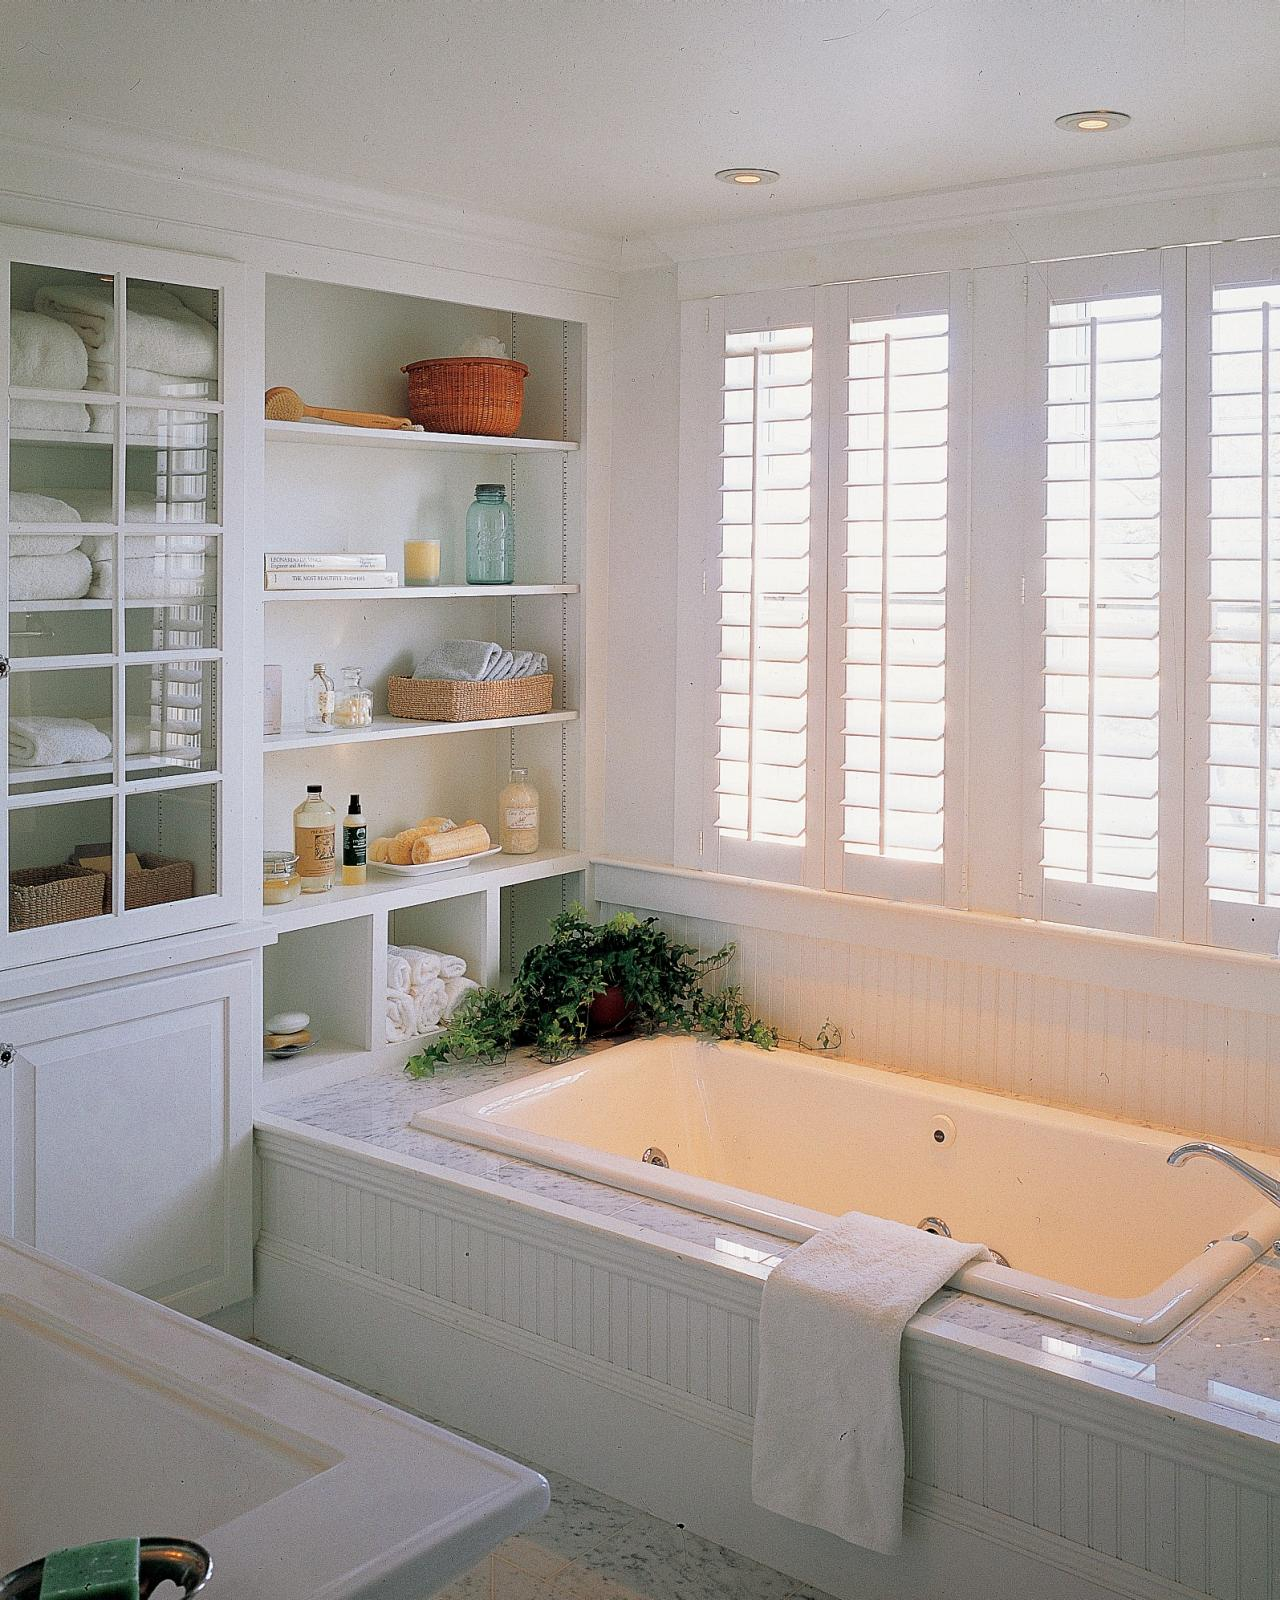 White Bathroom Decor Ideas: Pictures & Tips From HGTV